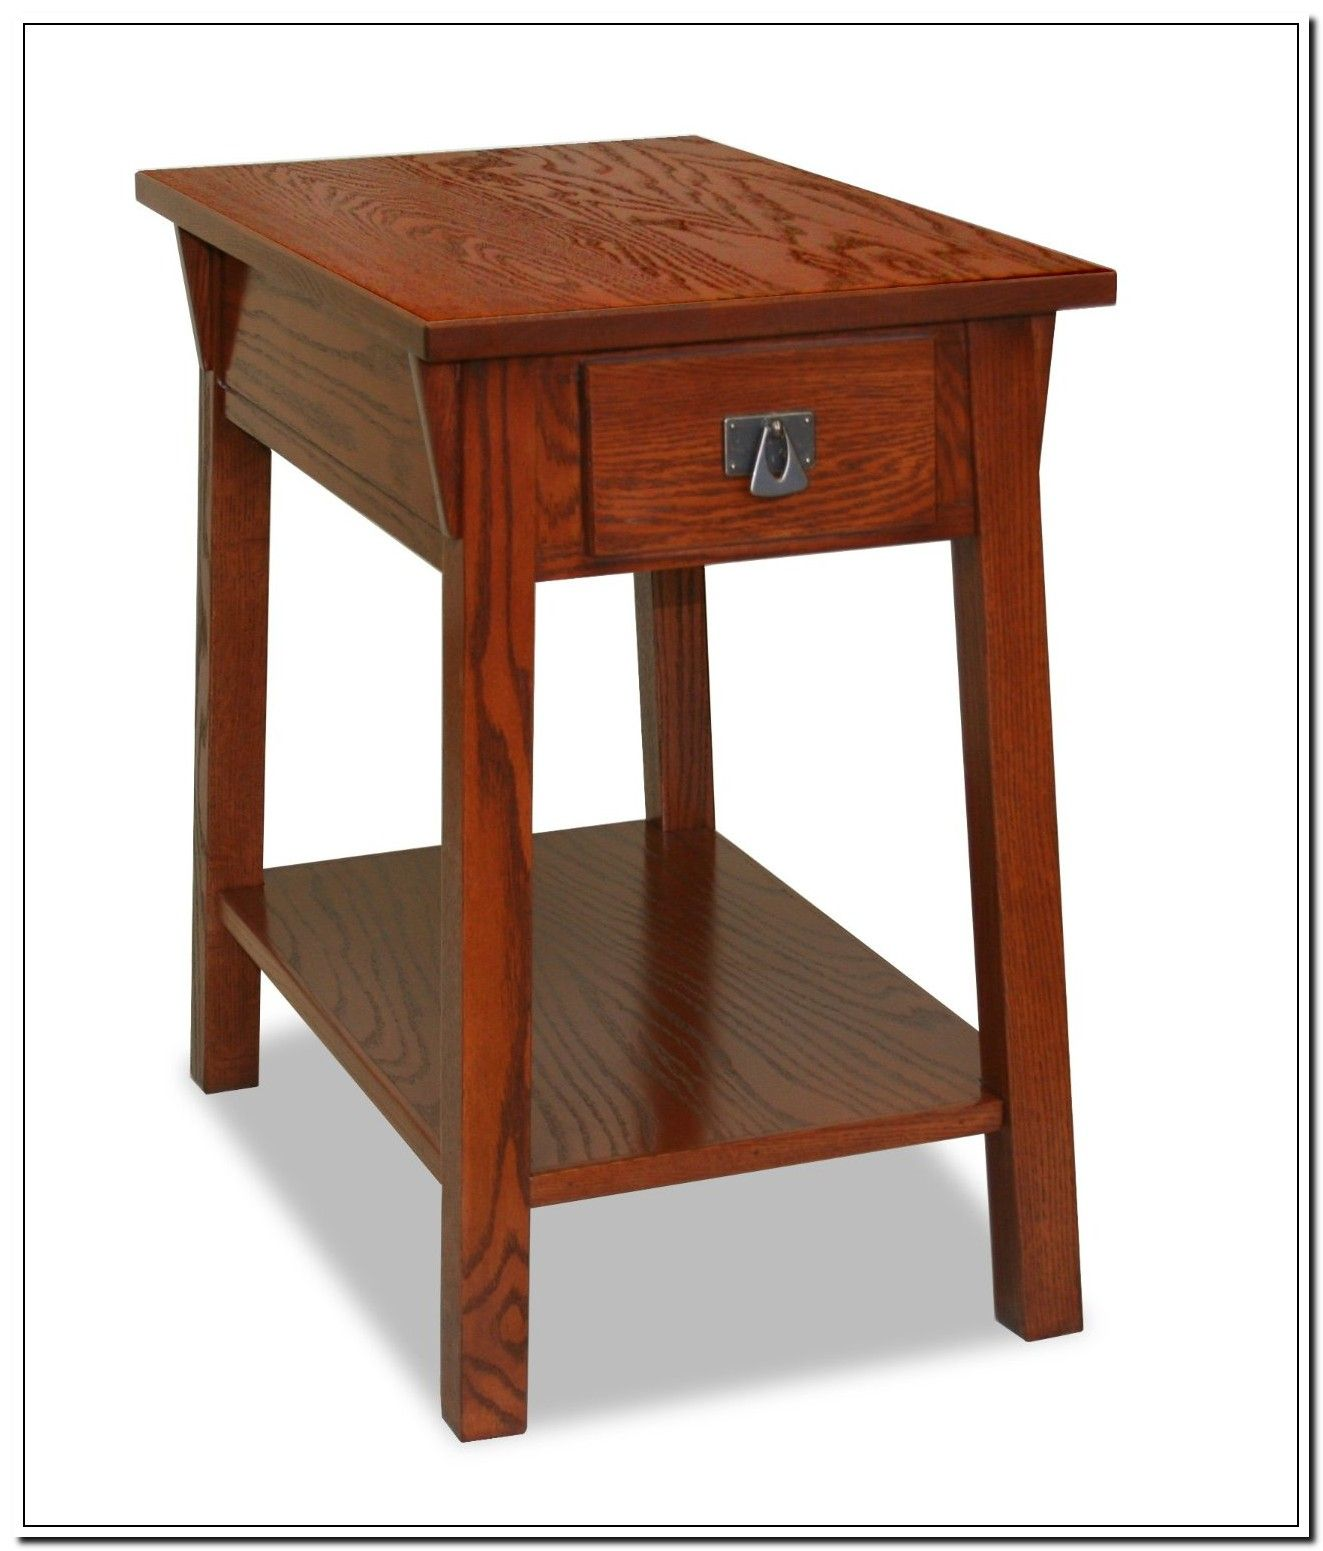 93 Reference Of Chair Side Table With Drawers In 2020 Chair Side Table Side Table With Drawer Side Table